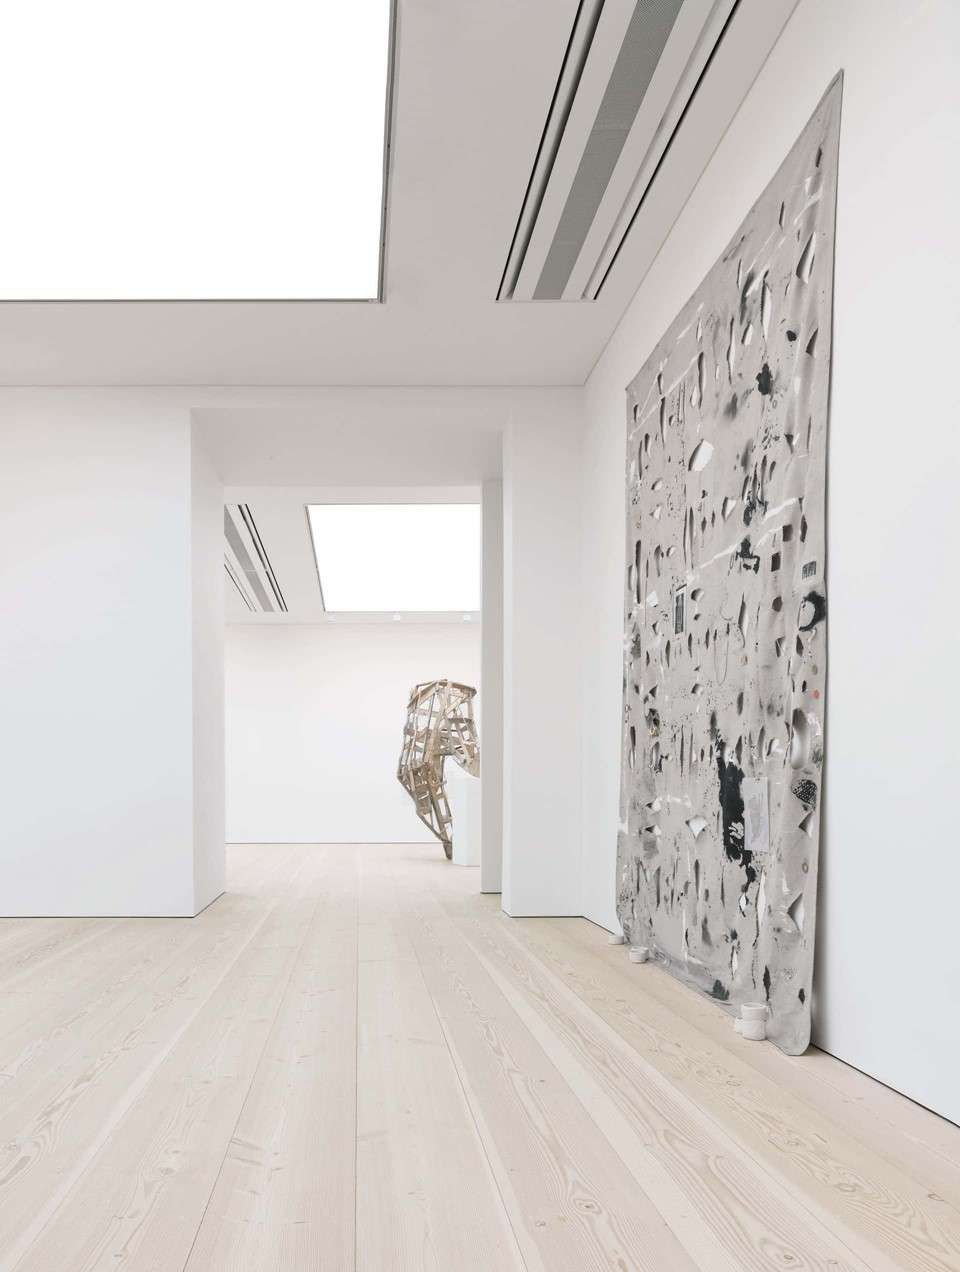 douglas-fir-flooring_lye-white-soap_saatchi-gallery_sculpture_dinesen_02.jpg